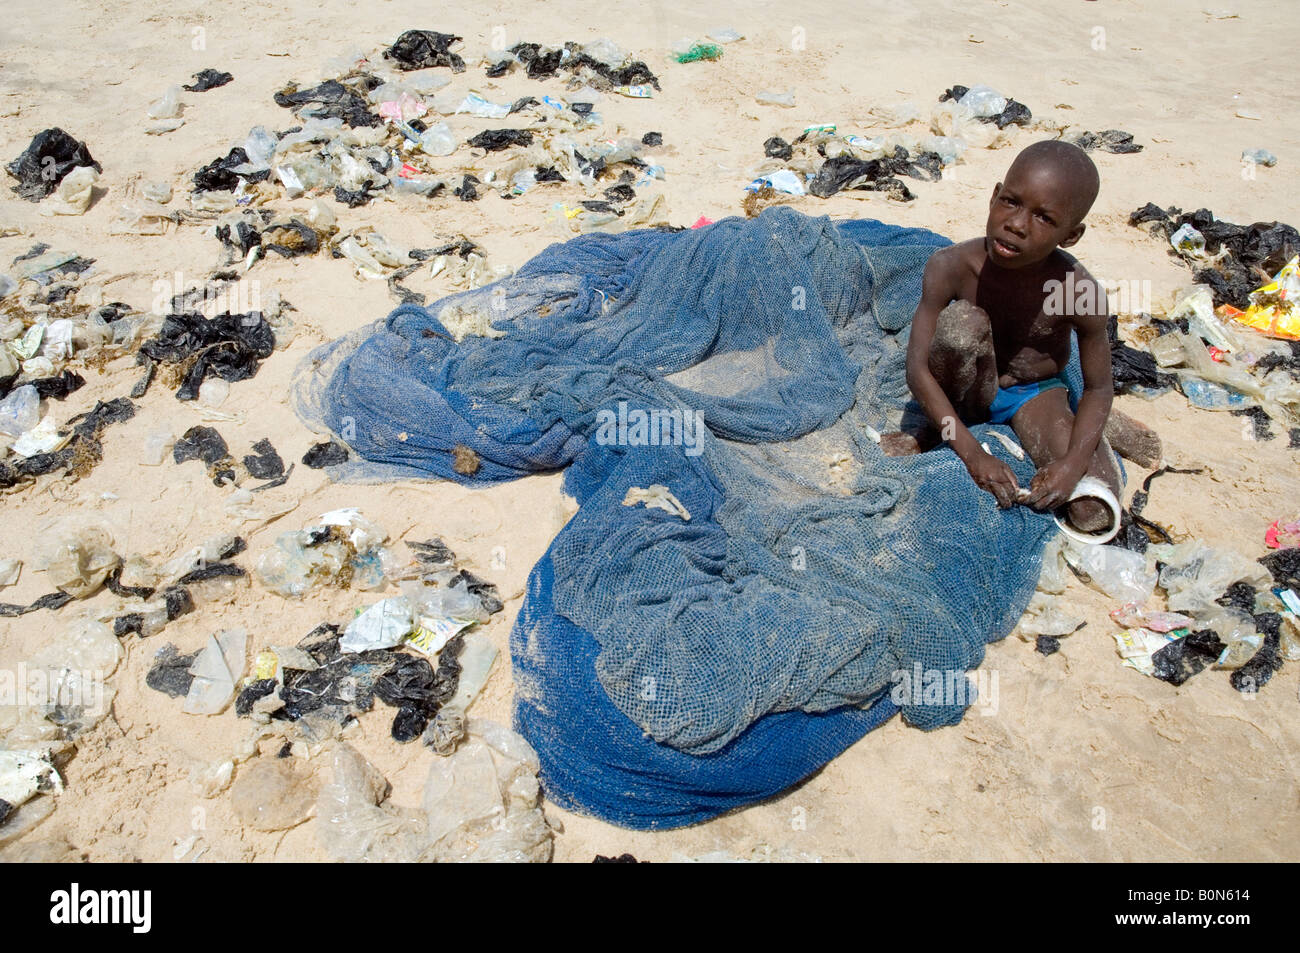 Boy removes plastic waste caught in a fishing net, east of Accra, Ghana - Stock Image